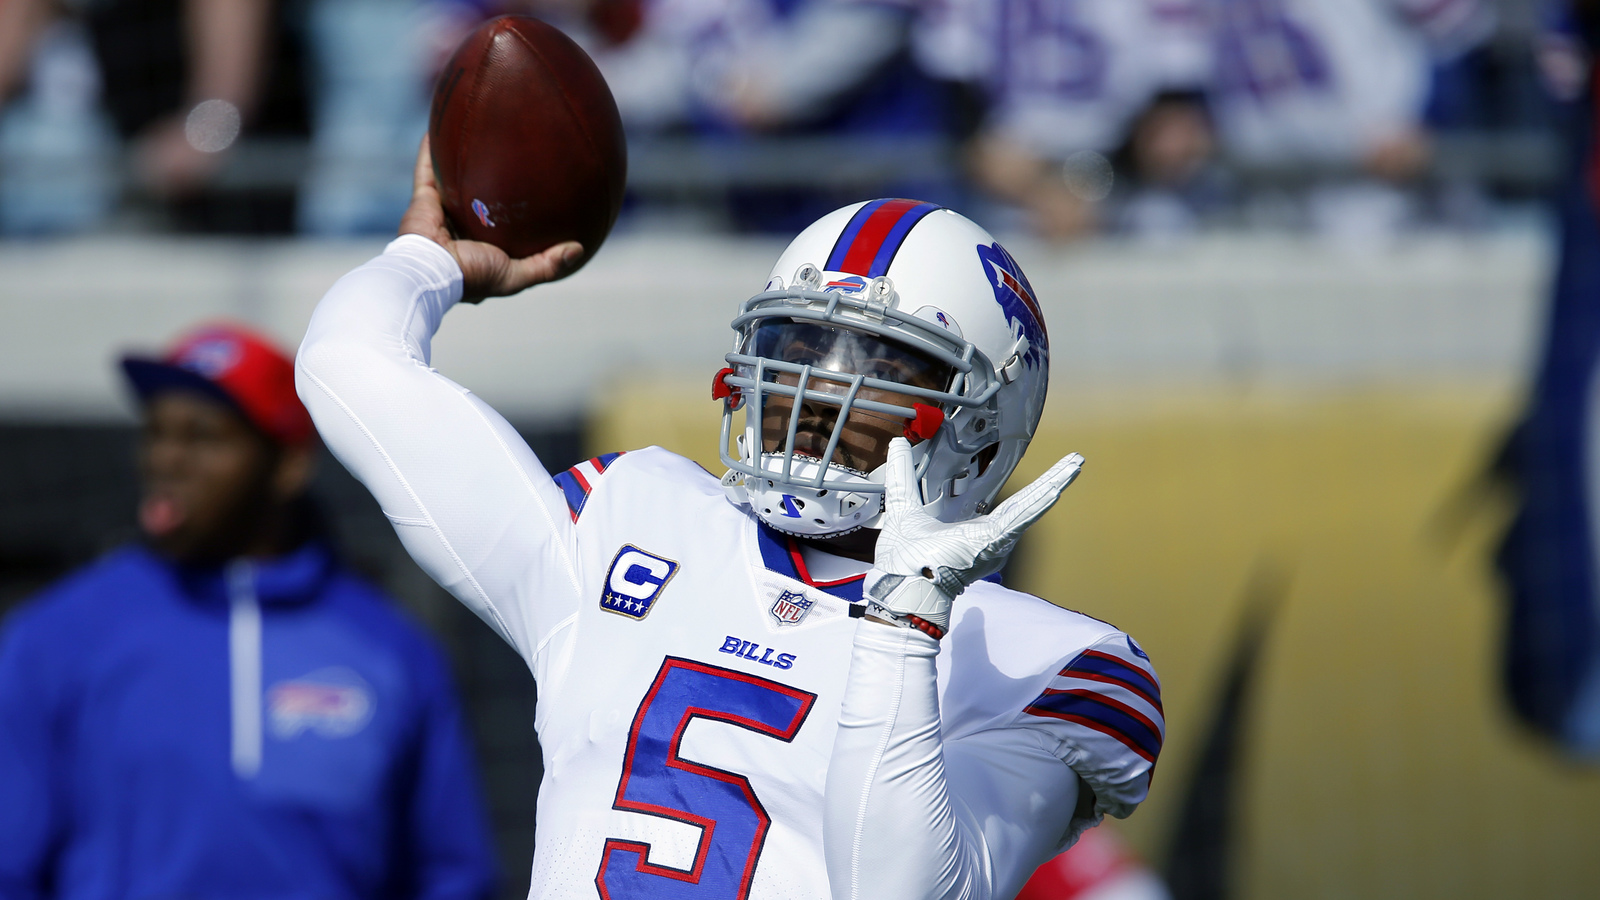 Bills are not planning on releasing QB Tyrod Taylor